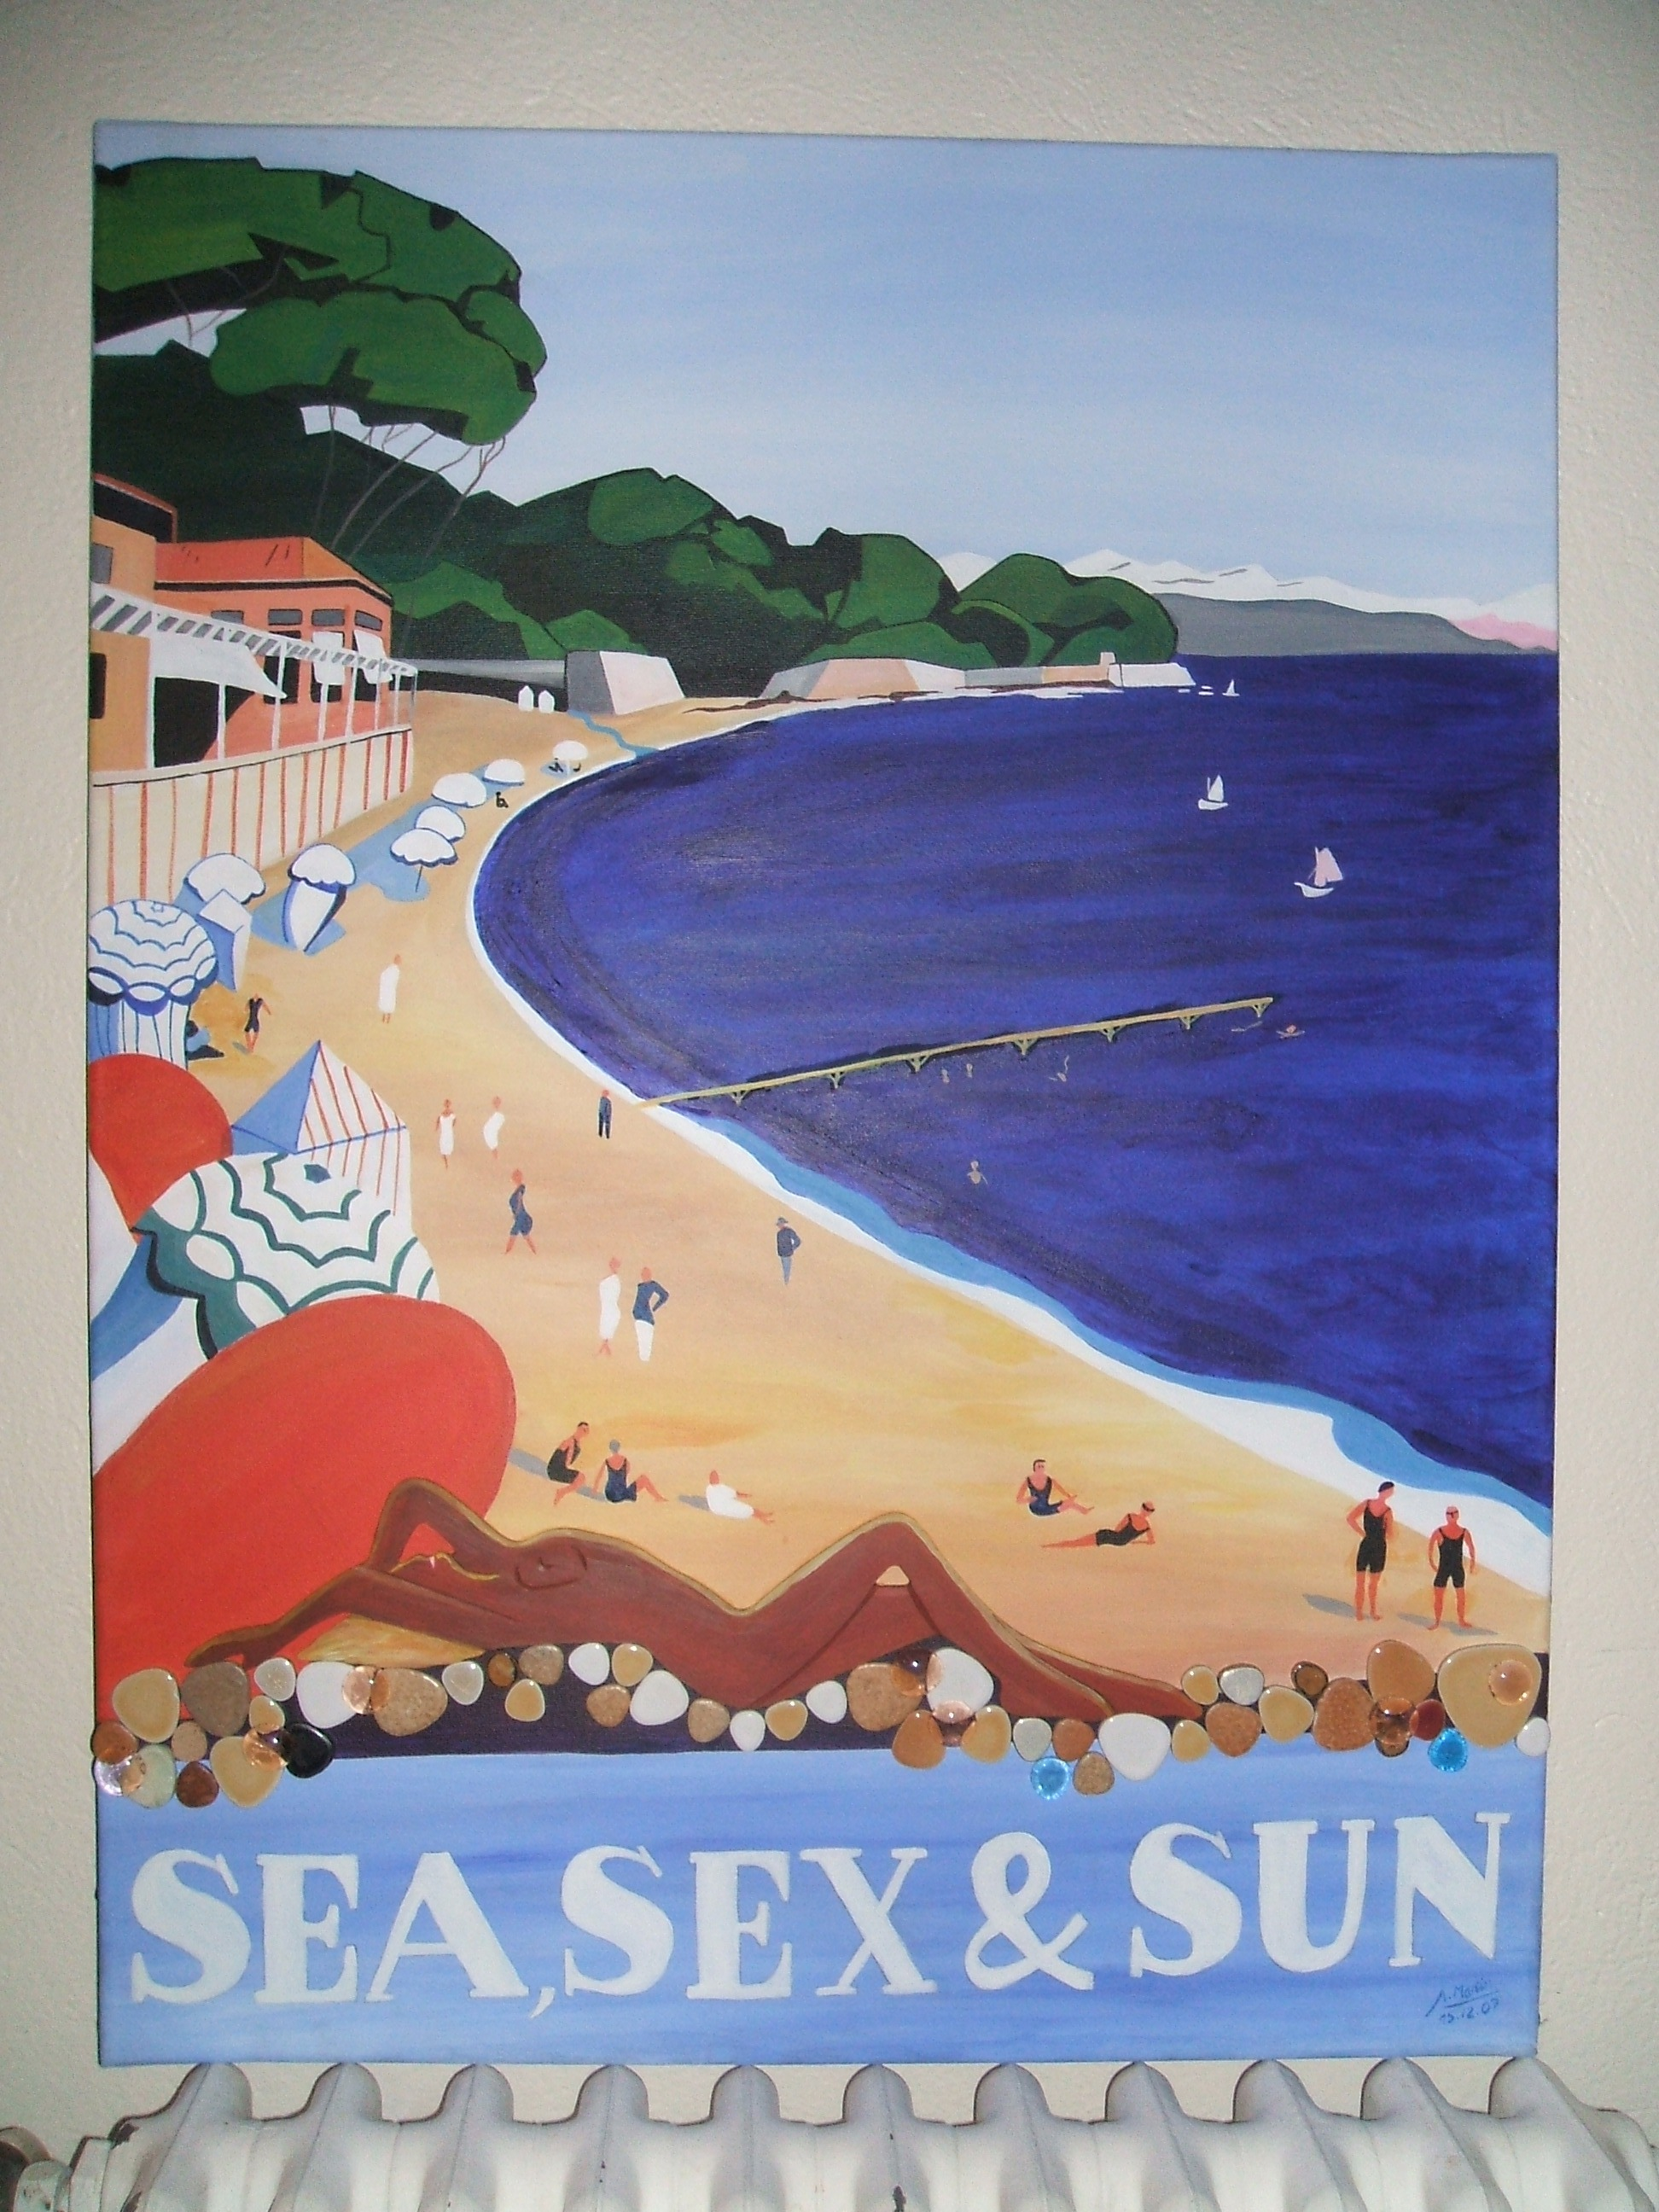 Sea, Sex and Sun